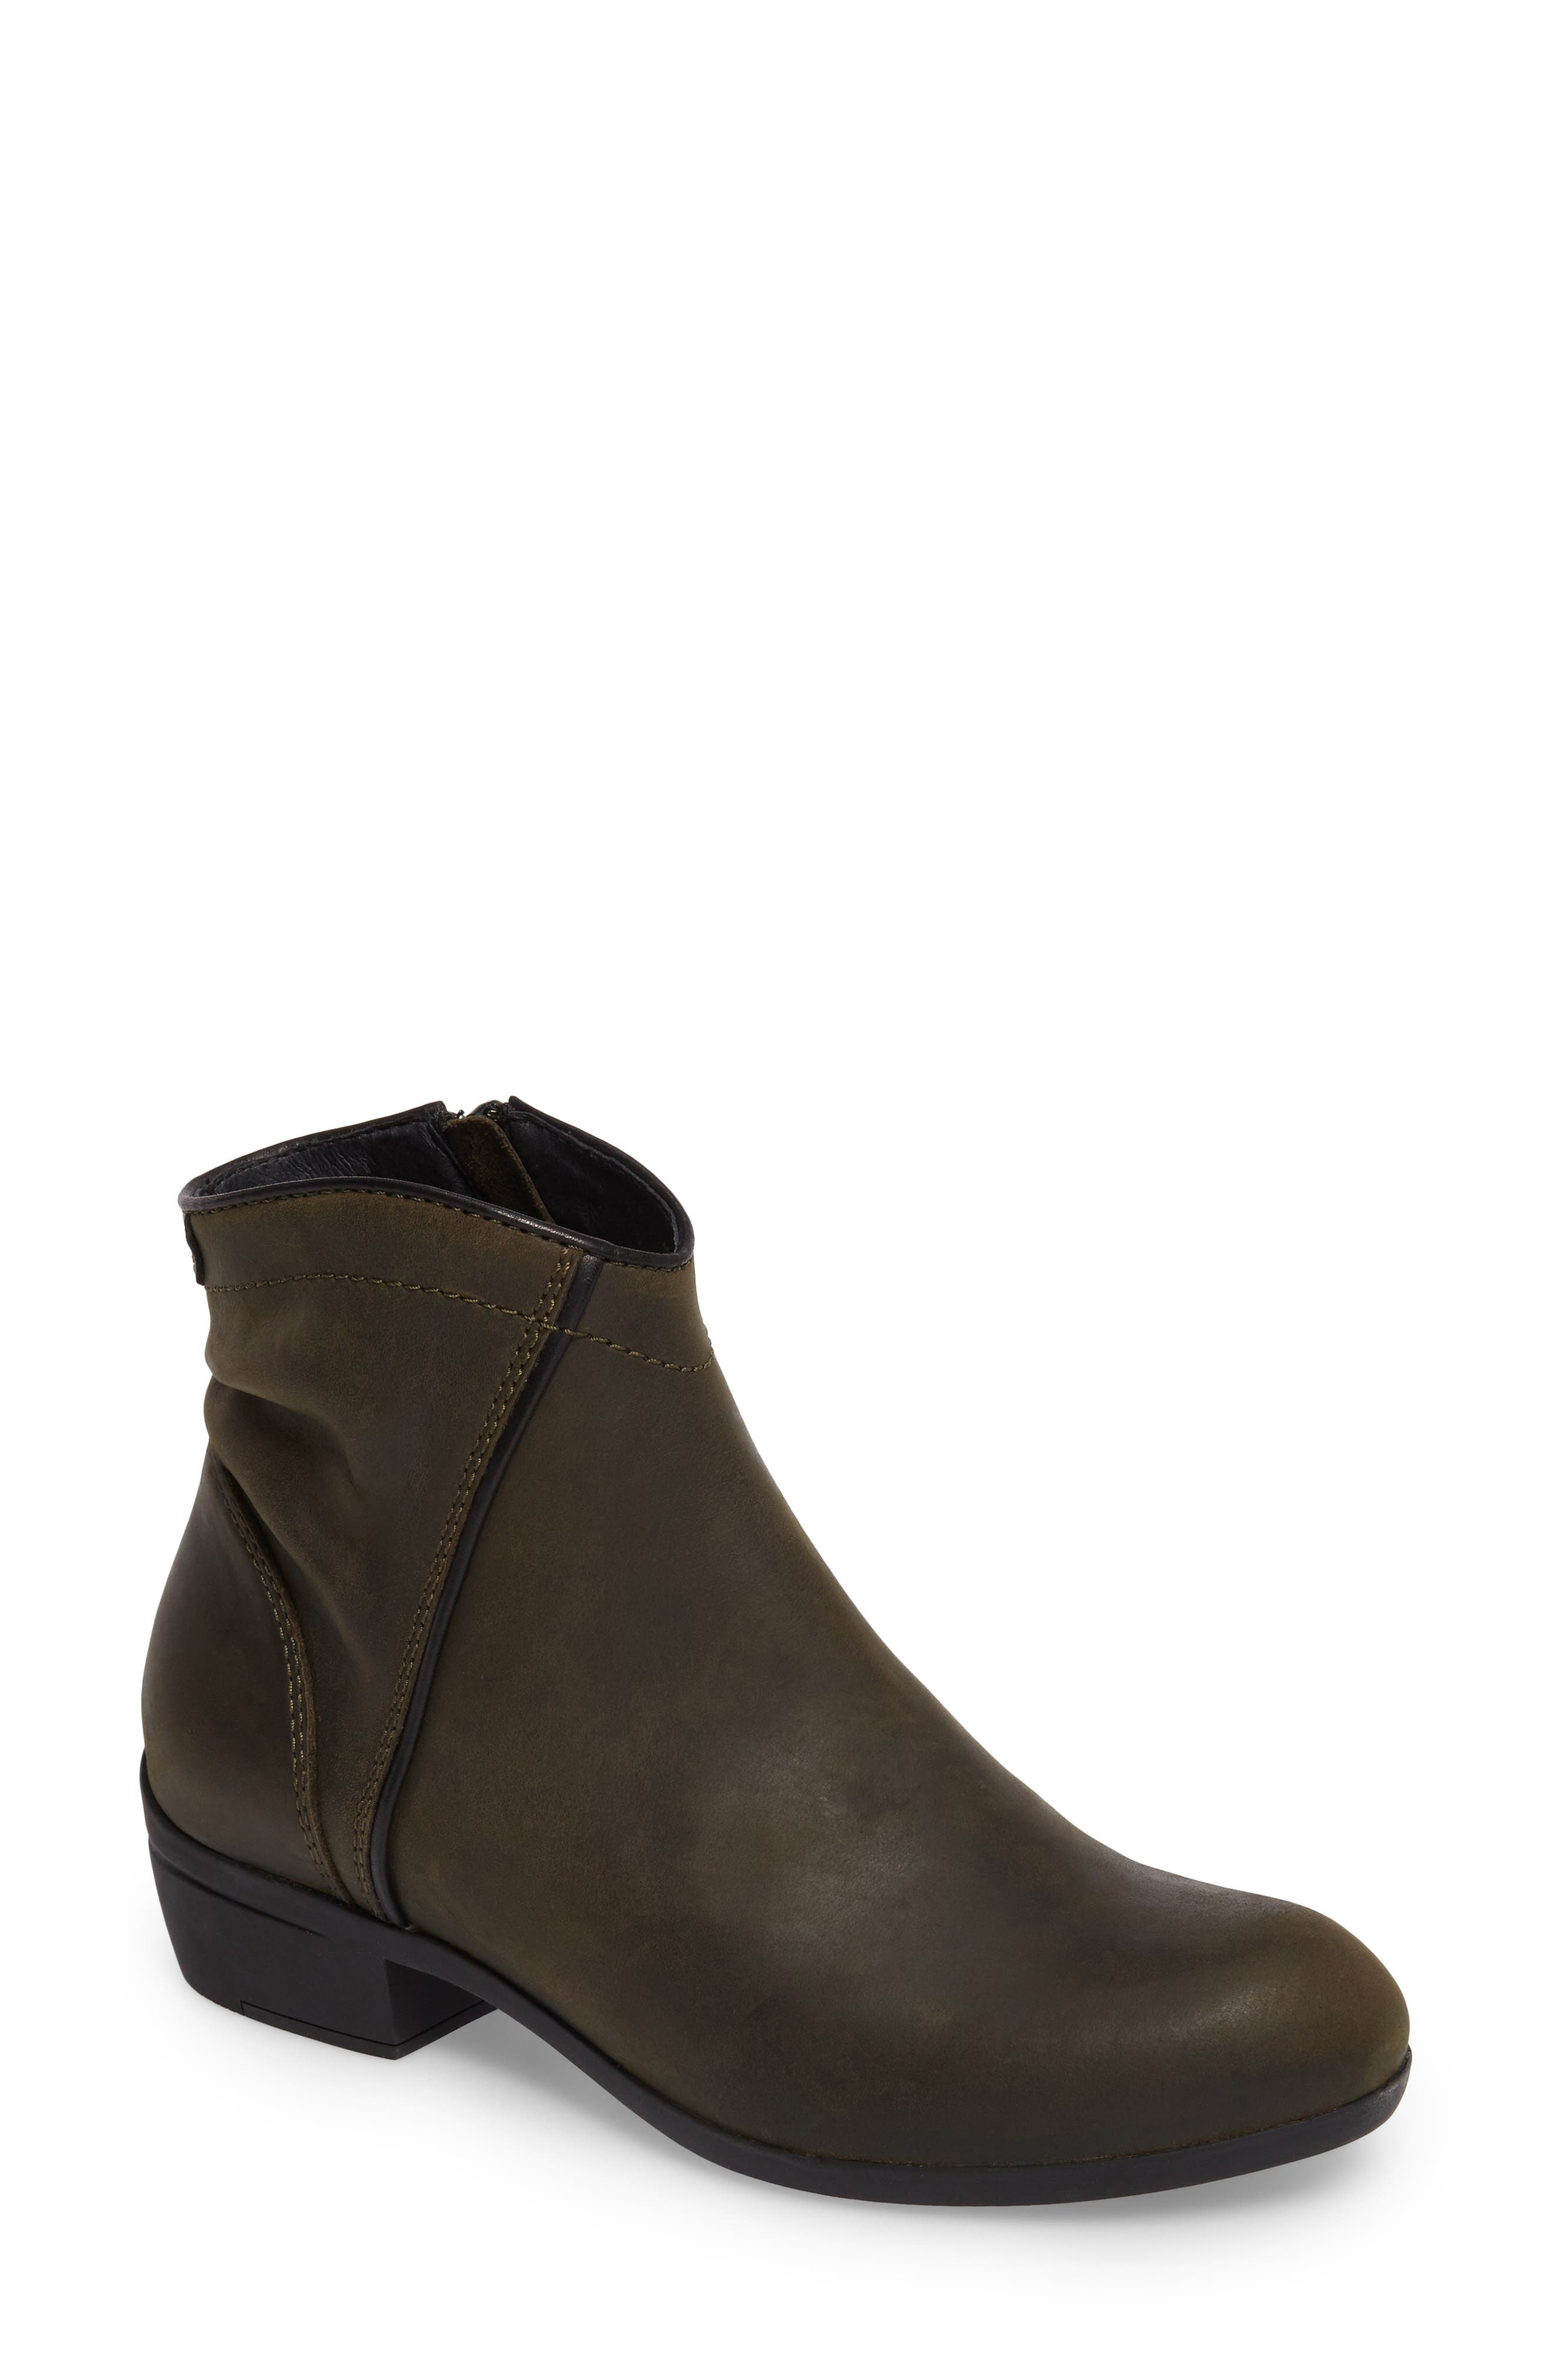 Main Image - Wolky Winchester Bootie (Women)